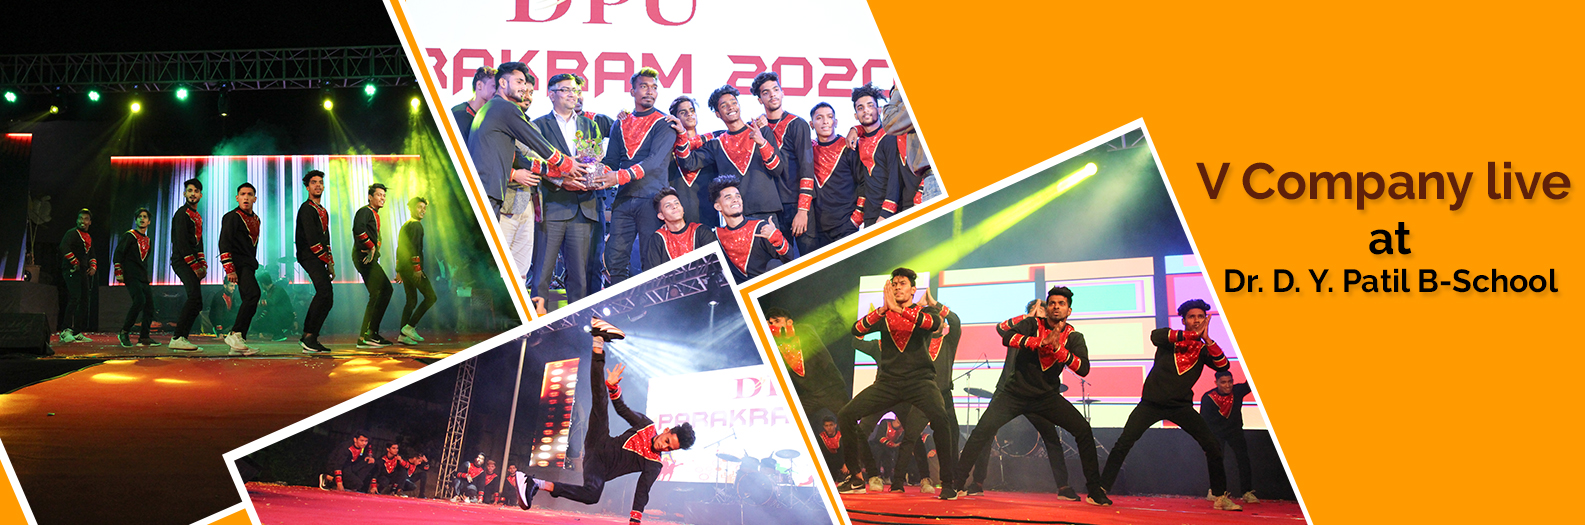 V Company live @ Dr.D.Y.Patil B-School